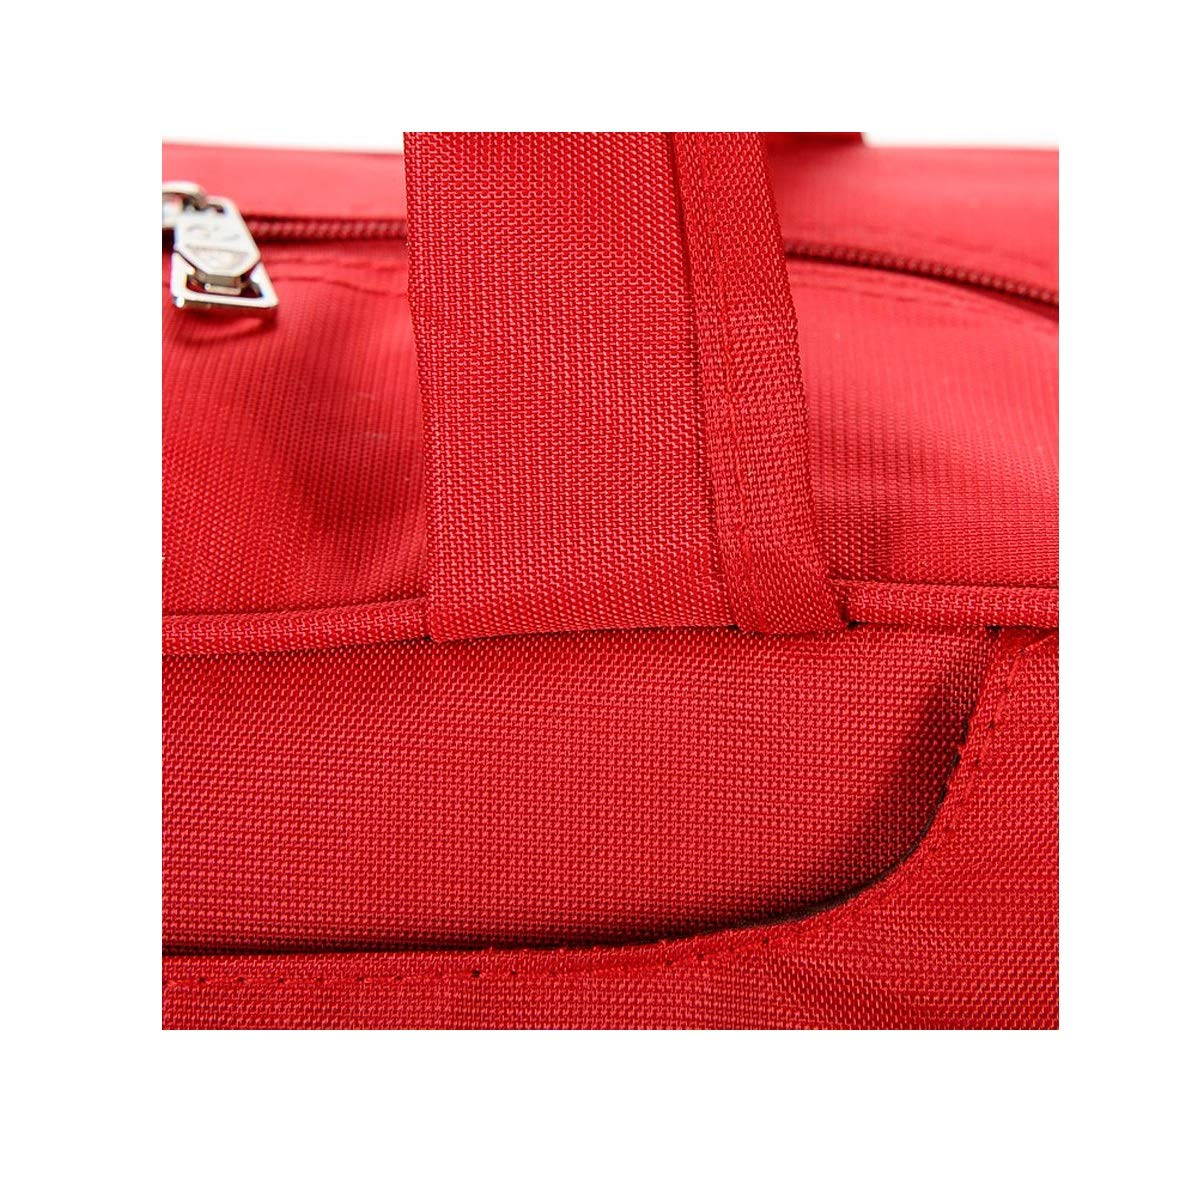 Soft Bag Simple Travel Organizer Red The Latest Style Huijunwenti Trolley Case Color : Red Handbag Travel Case 20 Inches